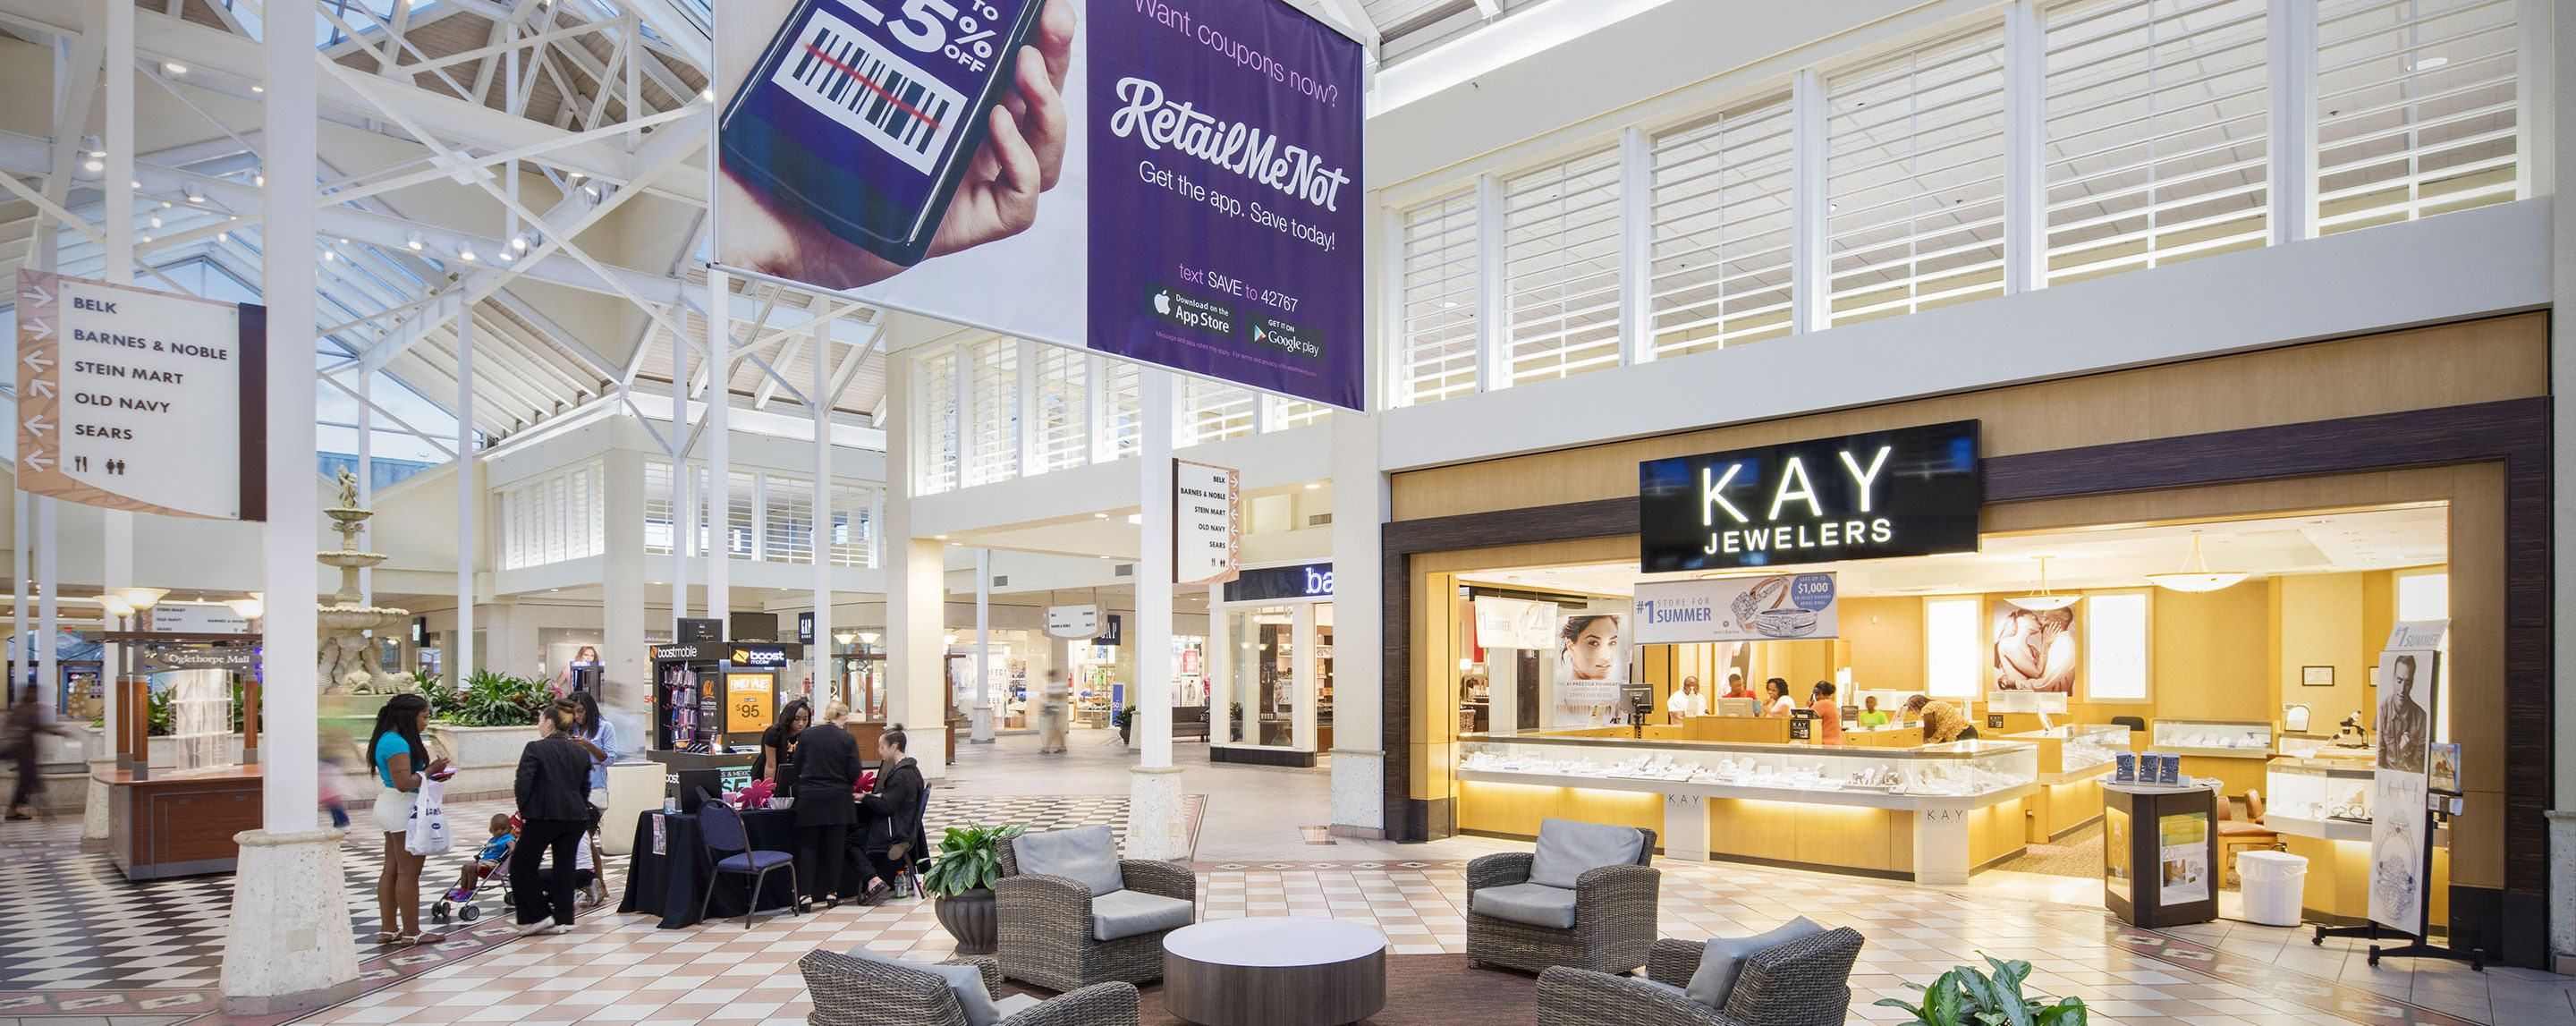 A mall with several people and a Kay Jewelers shown.